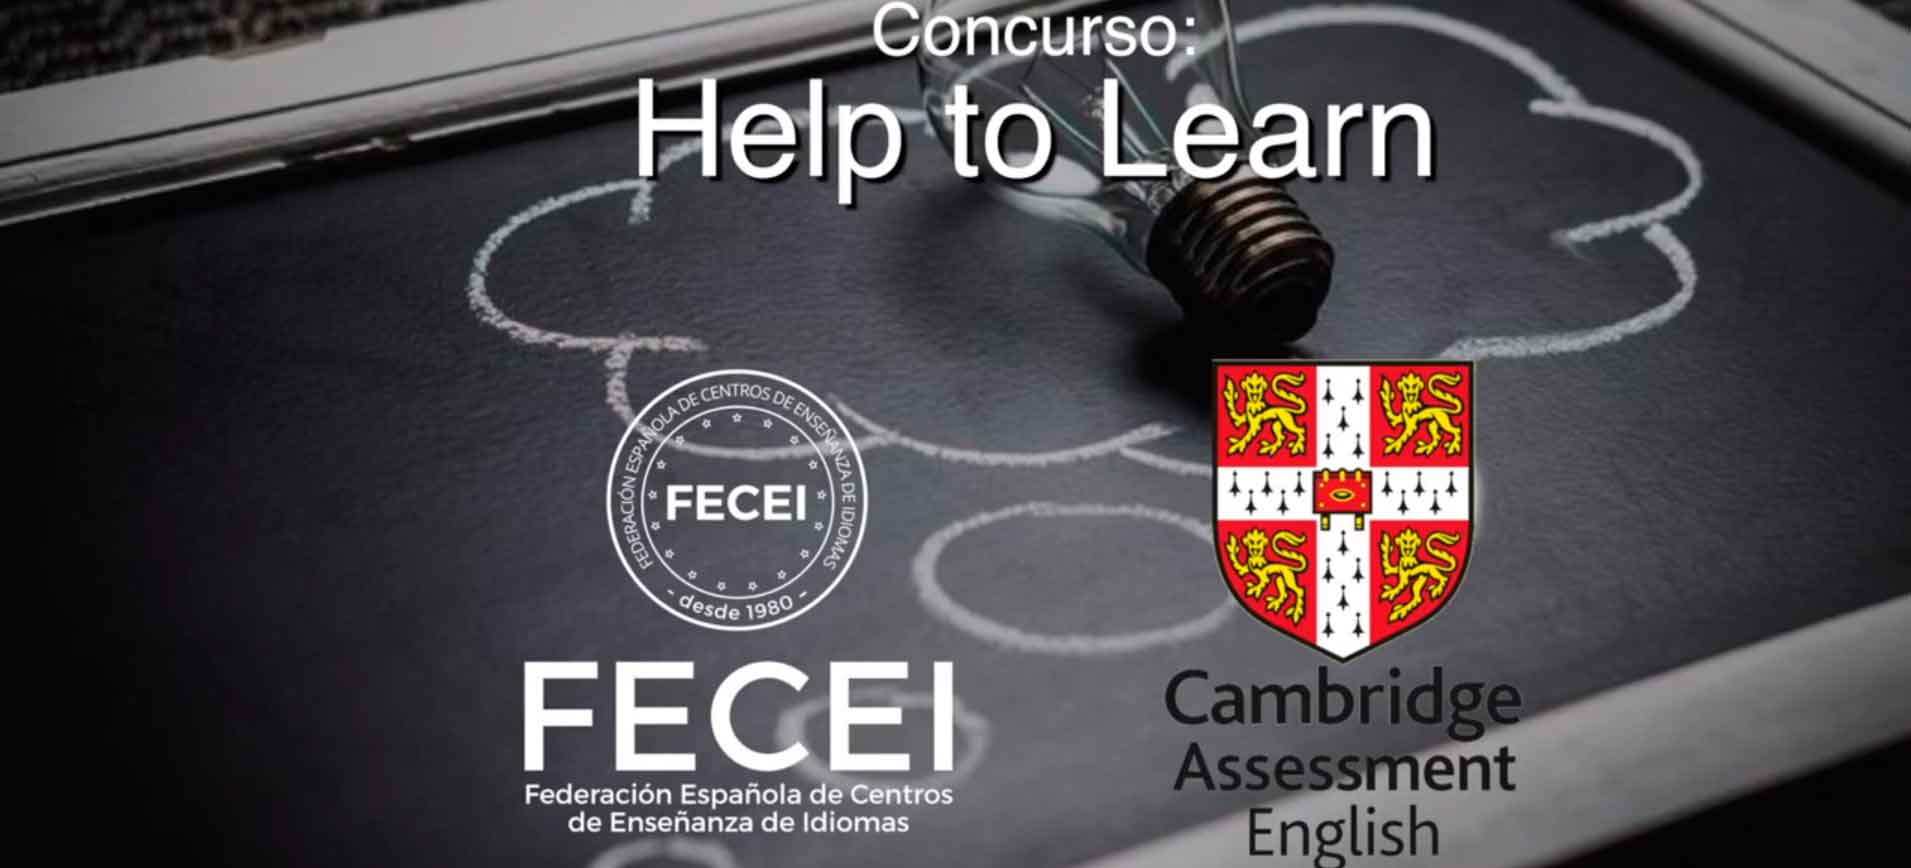 feei web - FECEI y Cambridge English convocan su segundo concurso Help to Learn para concienciar sobre la huella digital